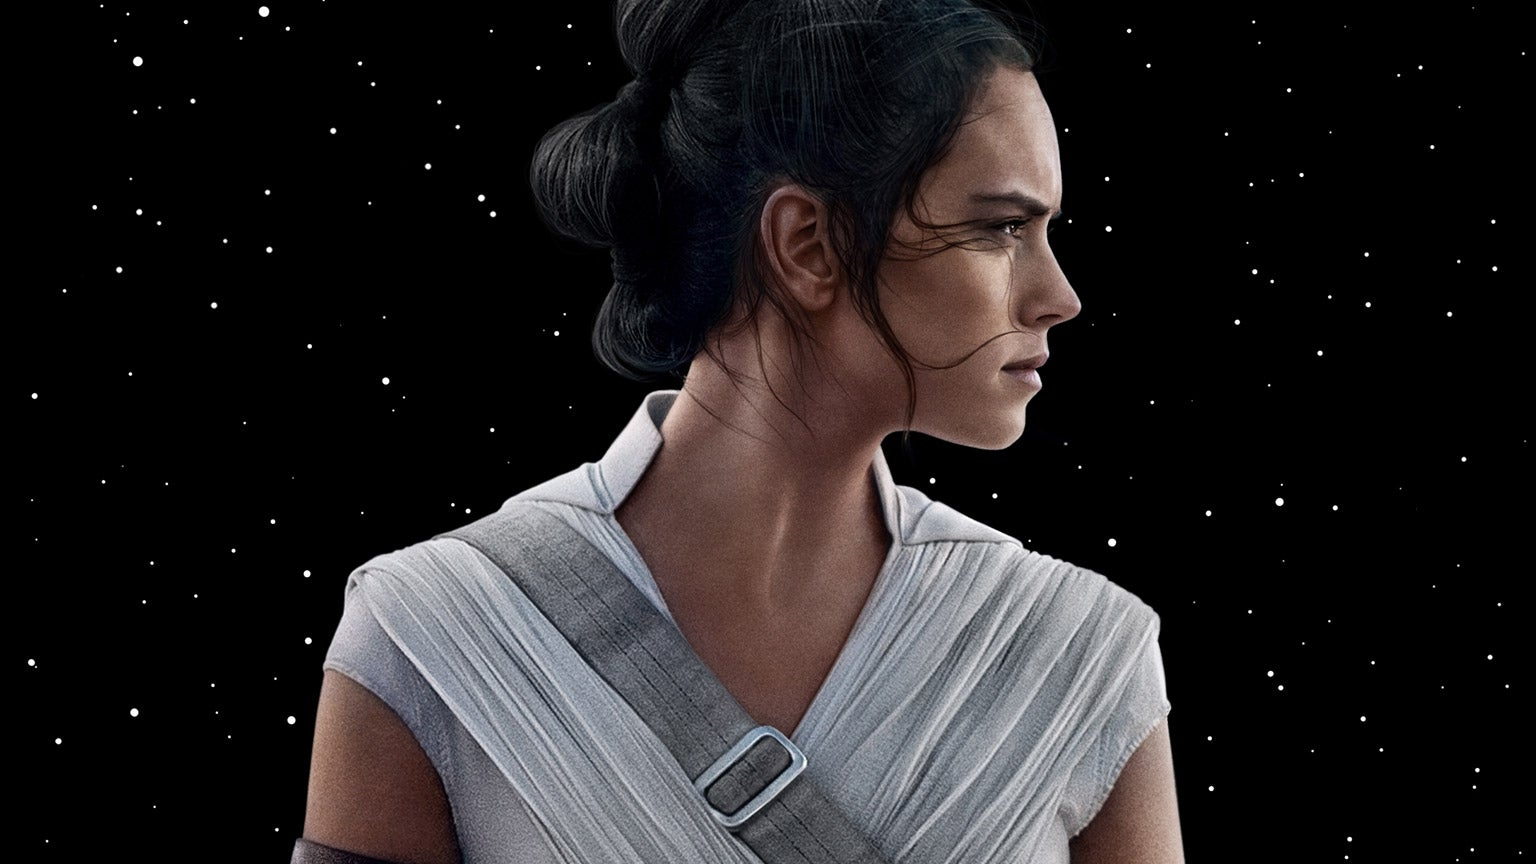 Rise Of Skywalker's New Character Posters Are Simply Beautiful